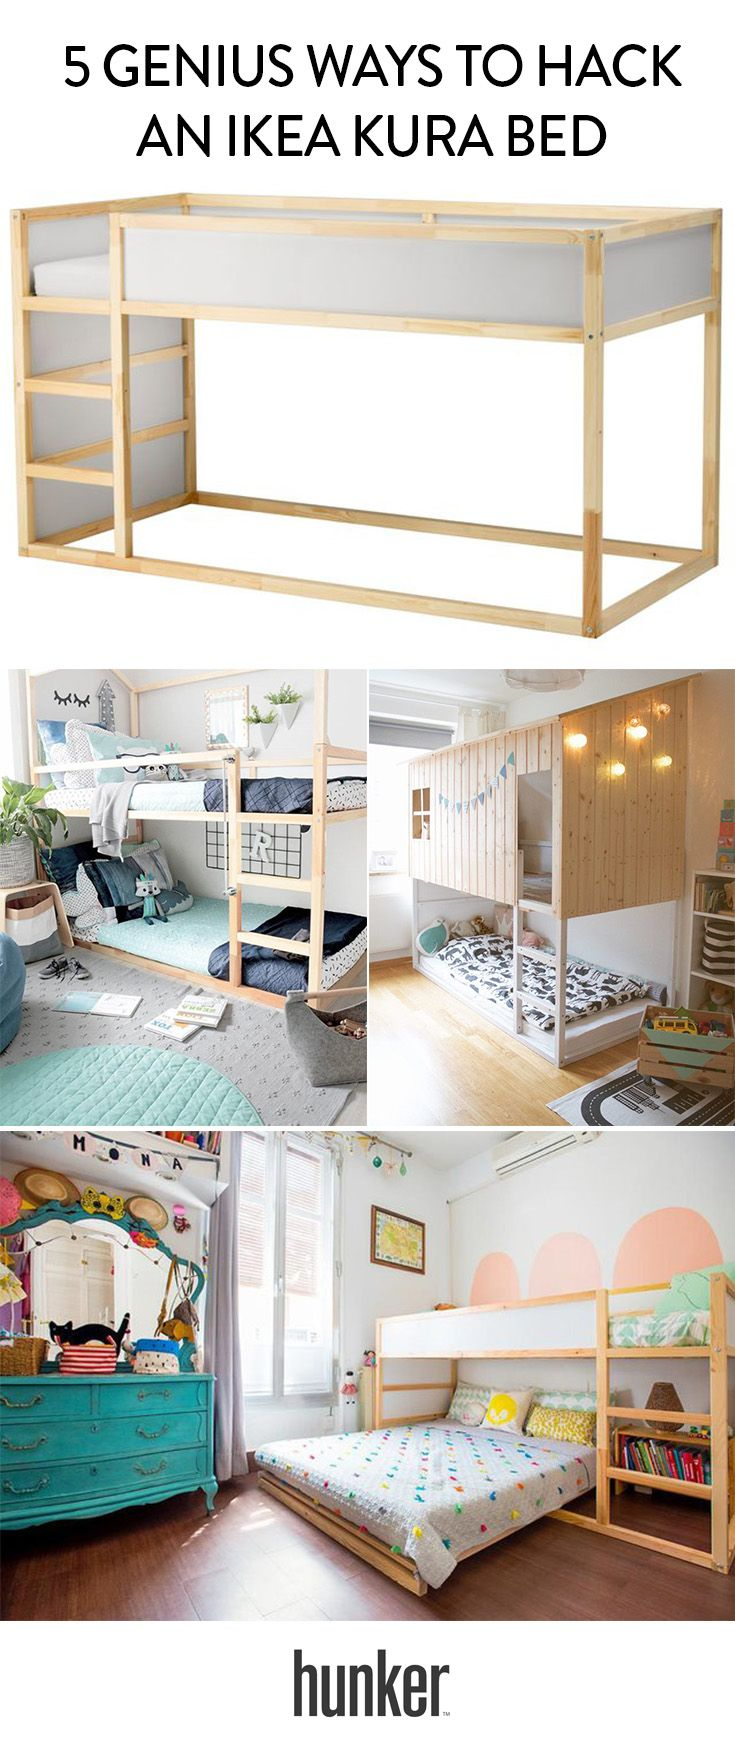 5 Genius Ways to Hack an Ikea Kura Bed #ikeahacks